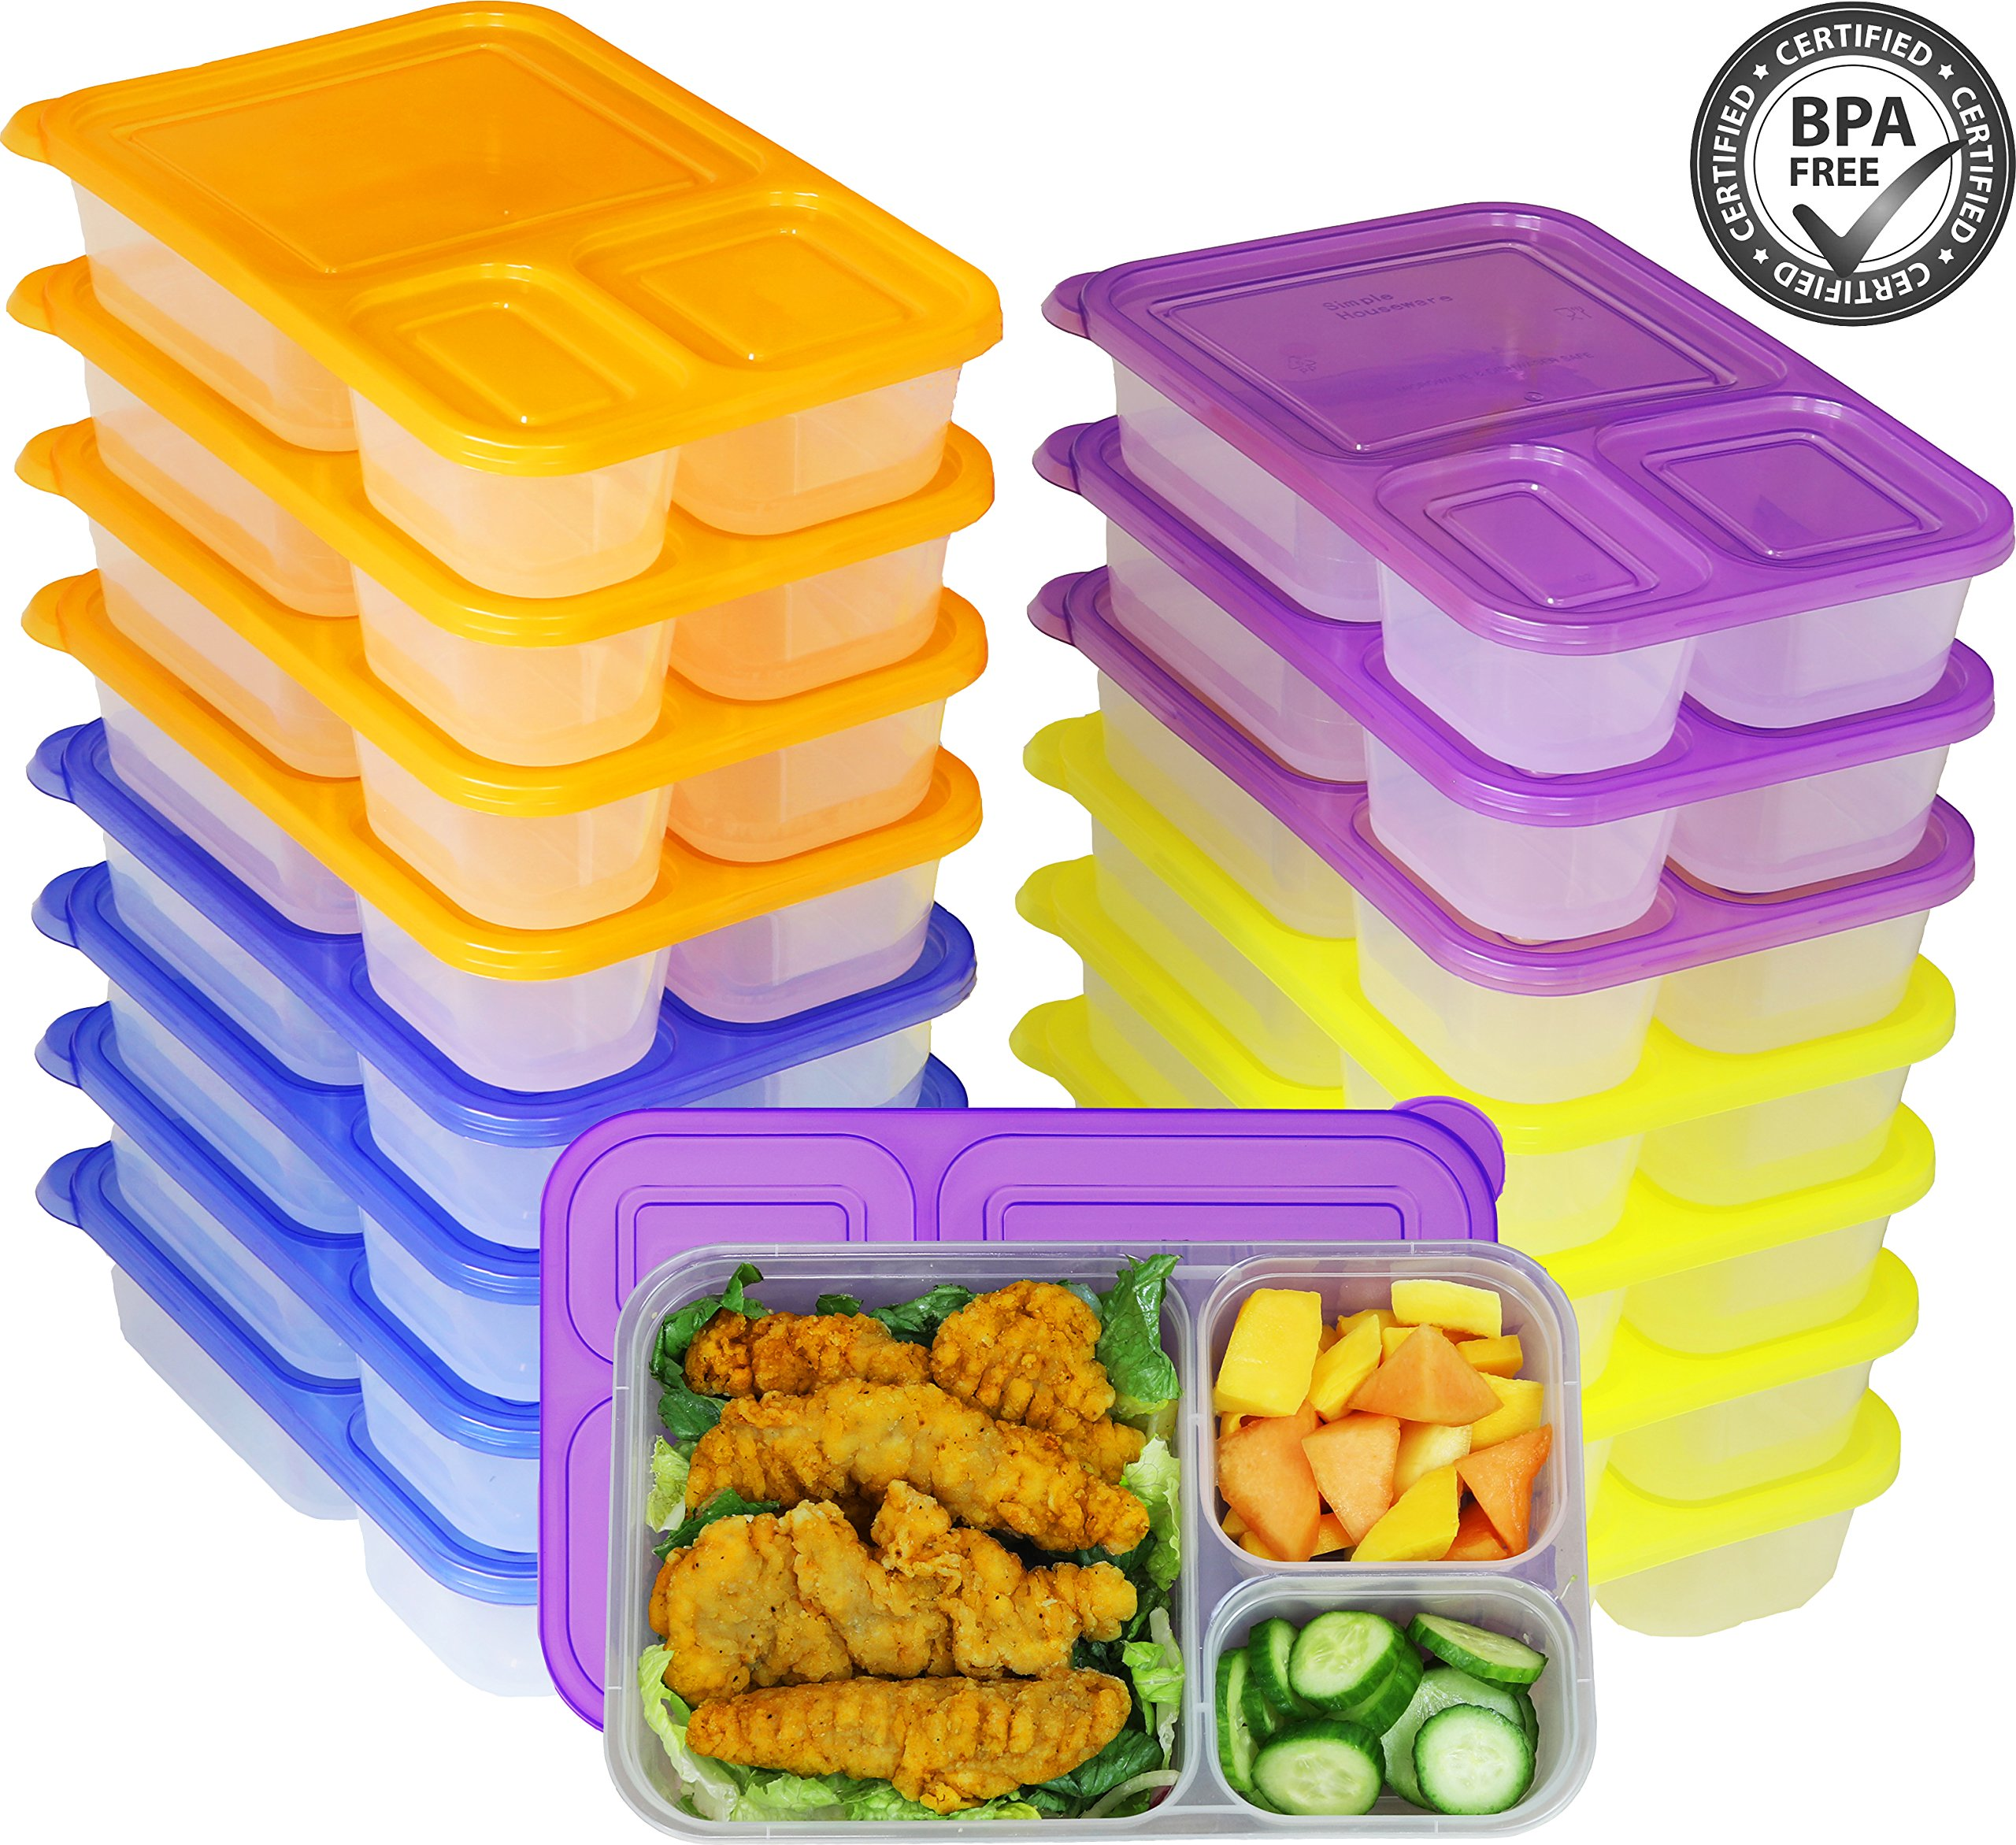 16 Pack - SimpleHouseware 3-Compartment Heavy Duty Bento Lunch Meal Prep Container Boxes, 36 ounces, 4 Color